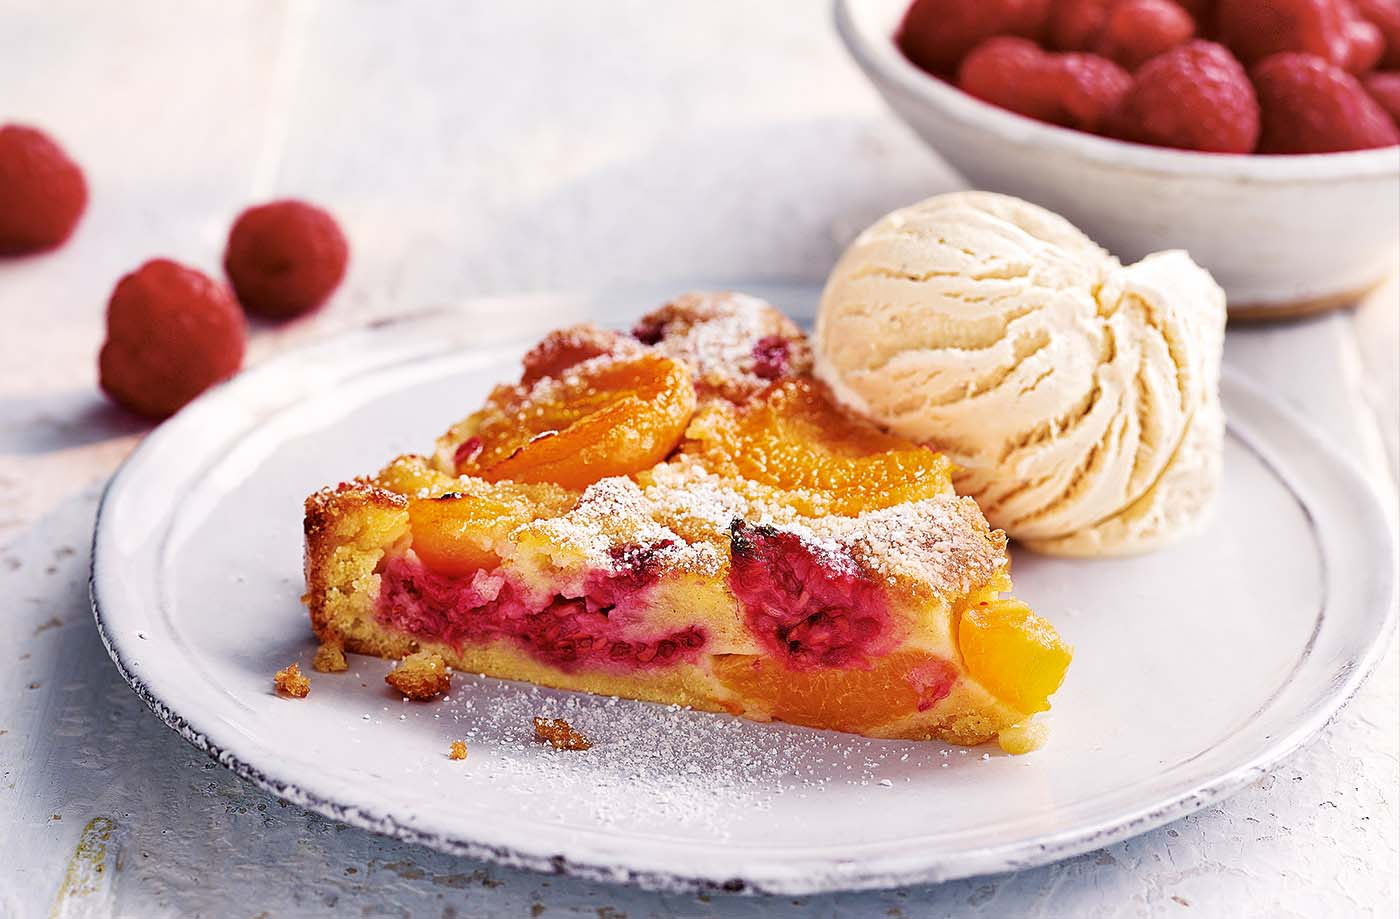 Apricot and raspberry clafoutis recipe